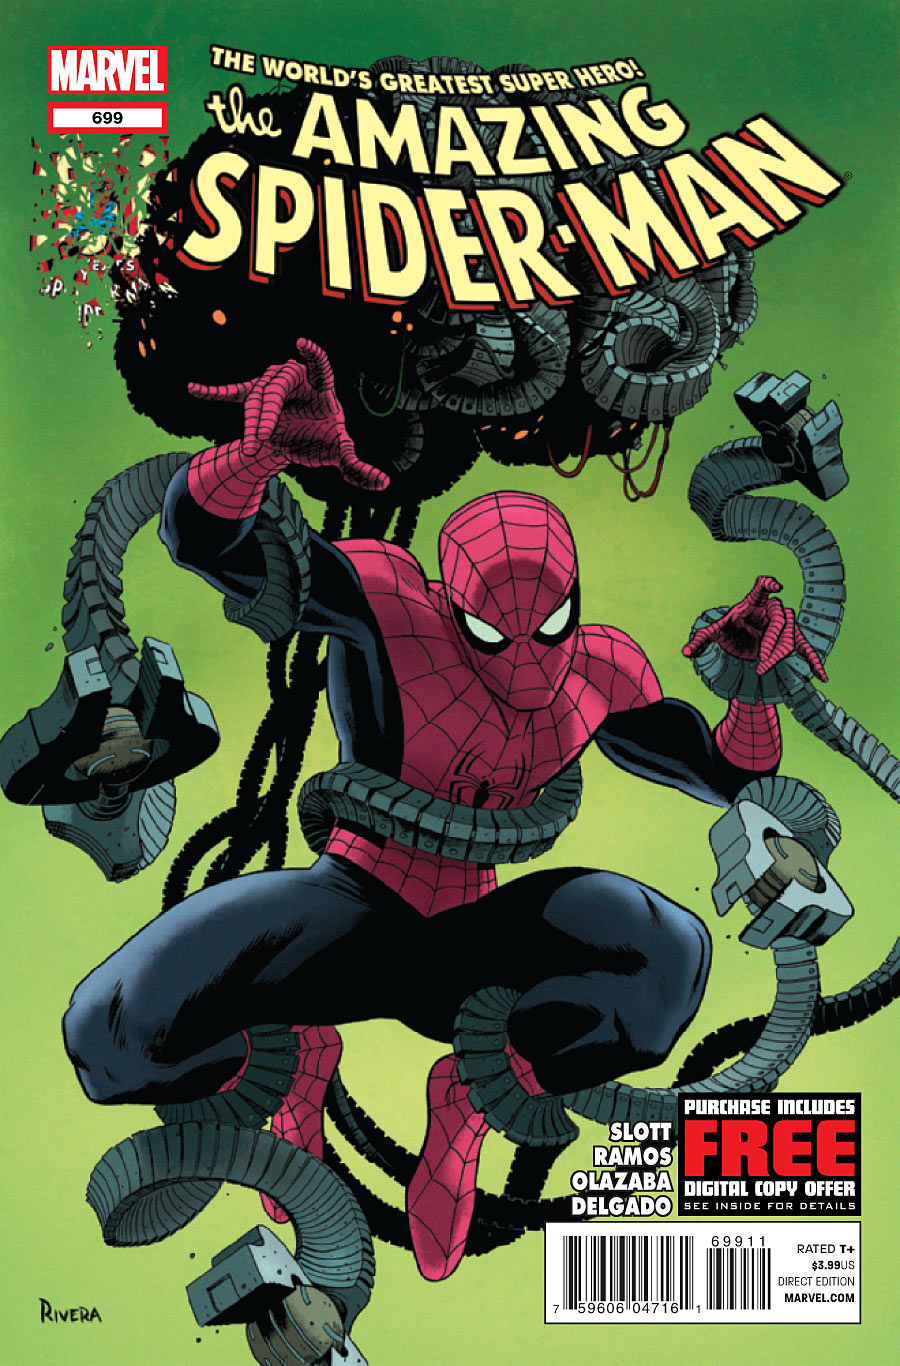 Written by Dan Slott, Art by Humberto Ramos